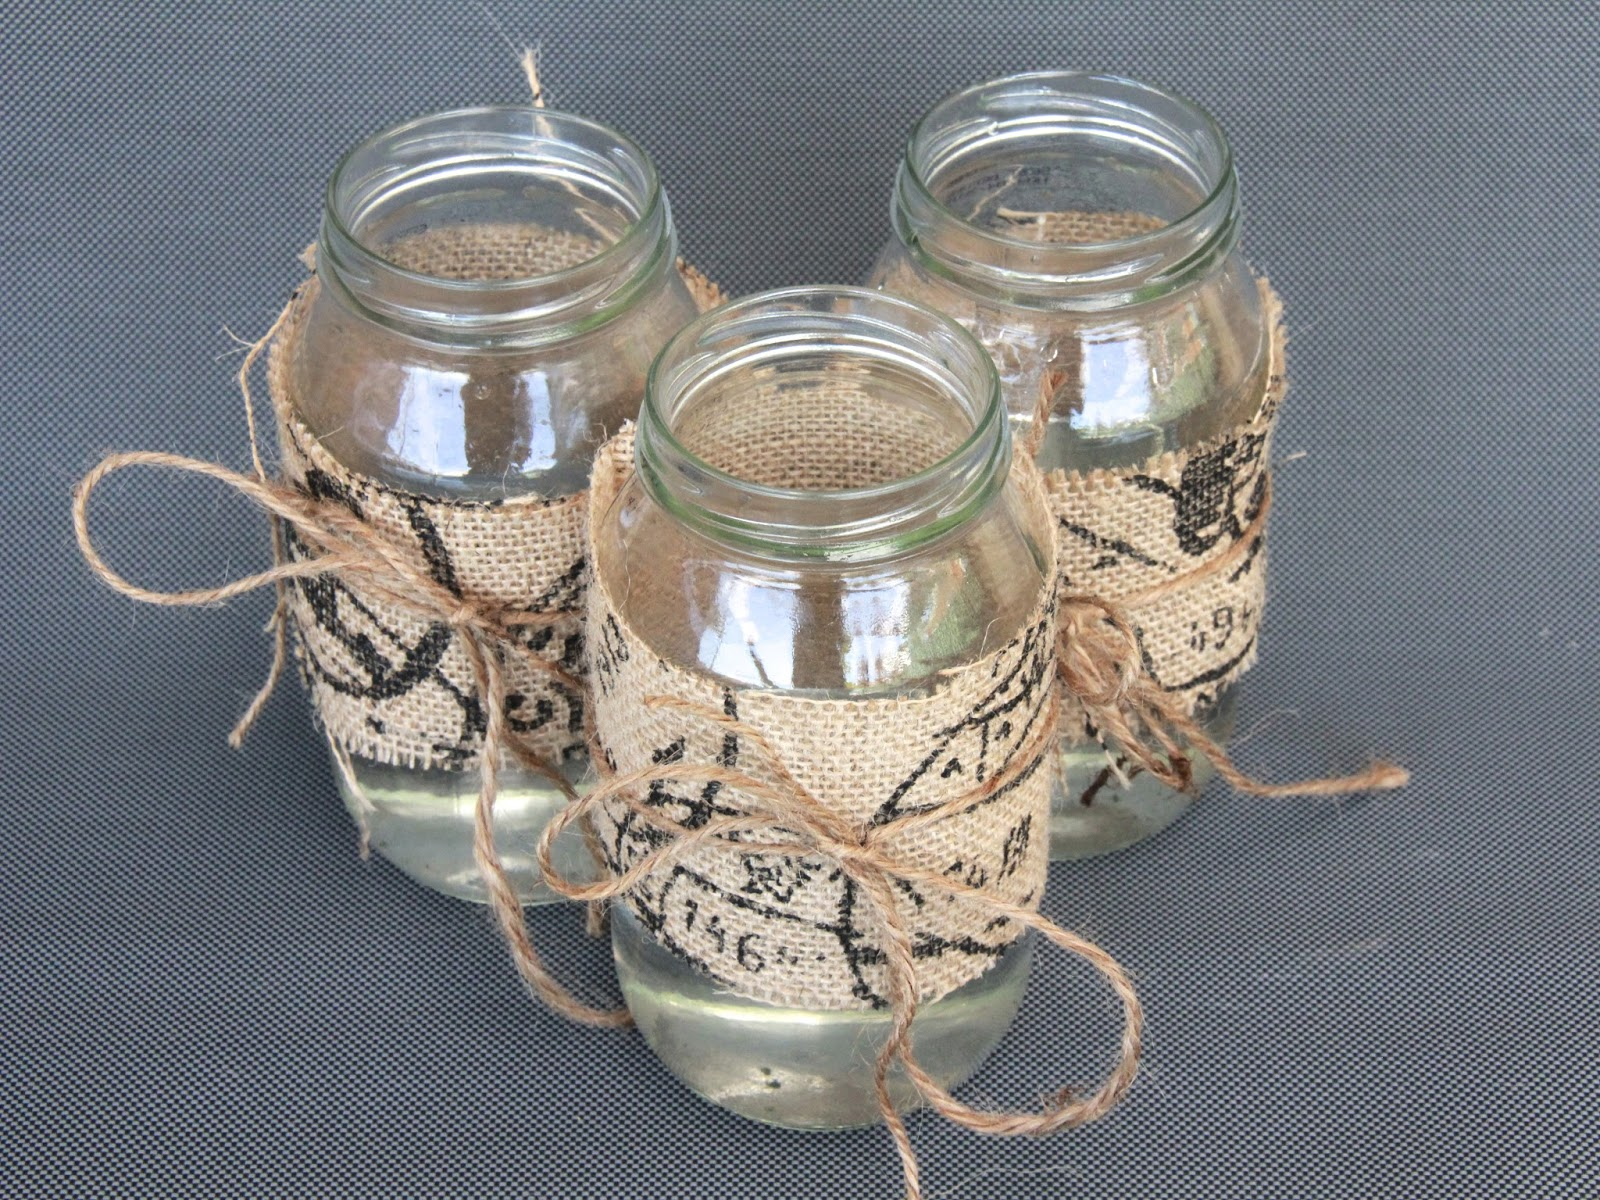 Diy centrepiece ideas glass jars decorated with burlap